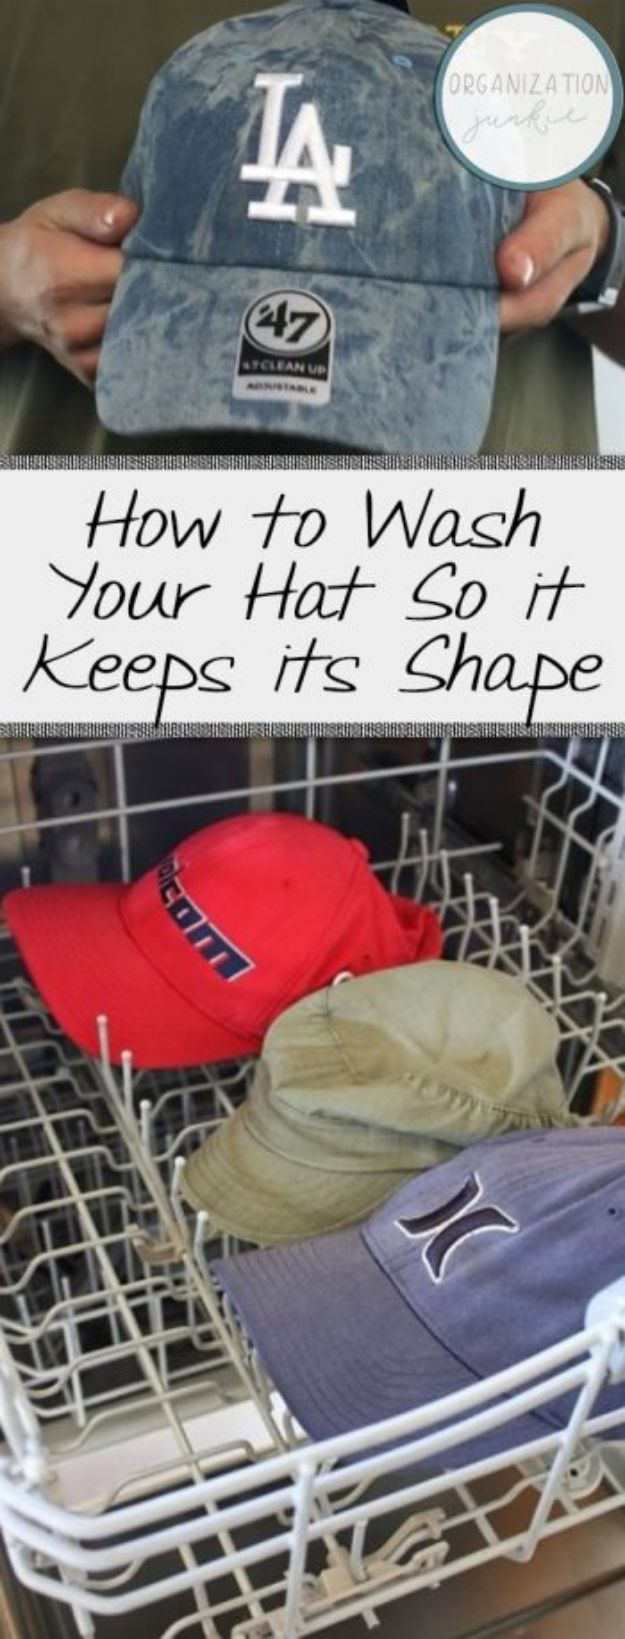 Laundry Hacks - Wash Your Hat So it Keeps its Shape - Cool Tips for Busy Moms and Laundry Lifehacks - Laundry Room Organizing Ideas, Storage and Makeover - Folding, Drying, Cleaning and Stain Removal Tips for Clothes - How to Remove Stains, Paint, Ink and Smells - Whitening Tricks and Solutions - DIY Products and Recipes for Clothing Soaps